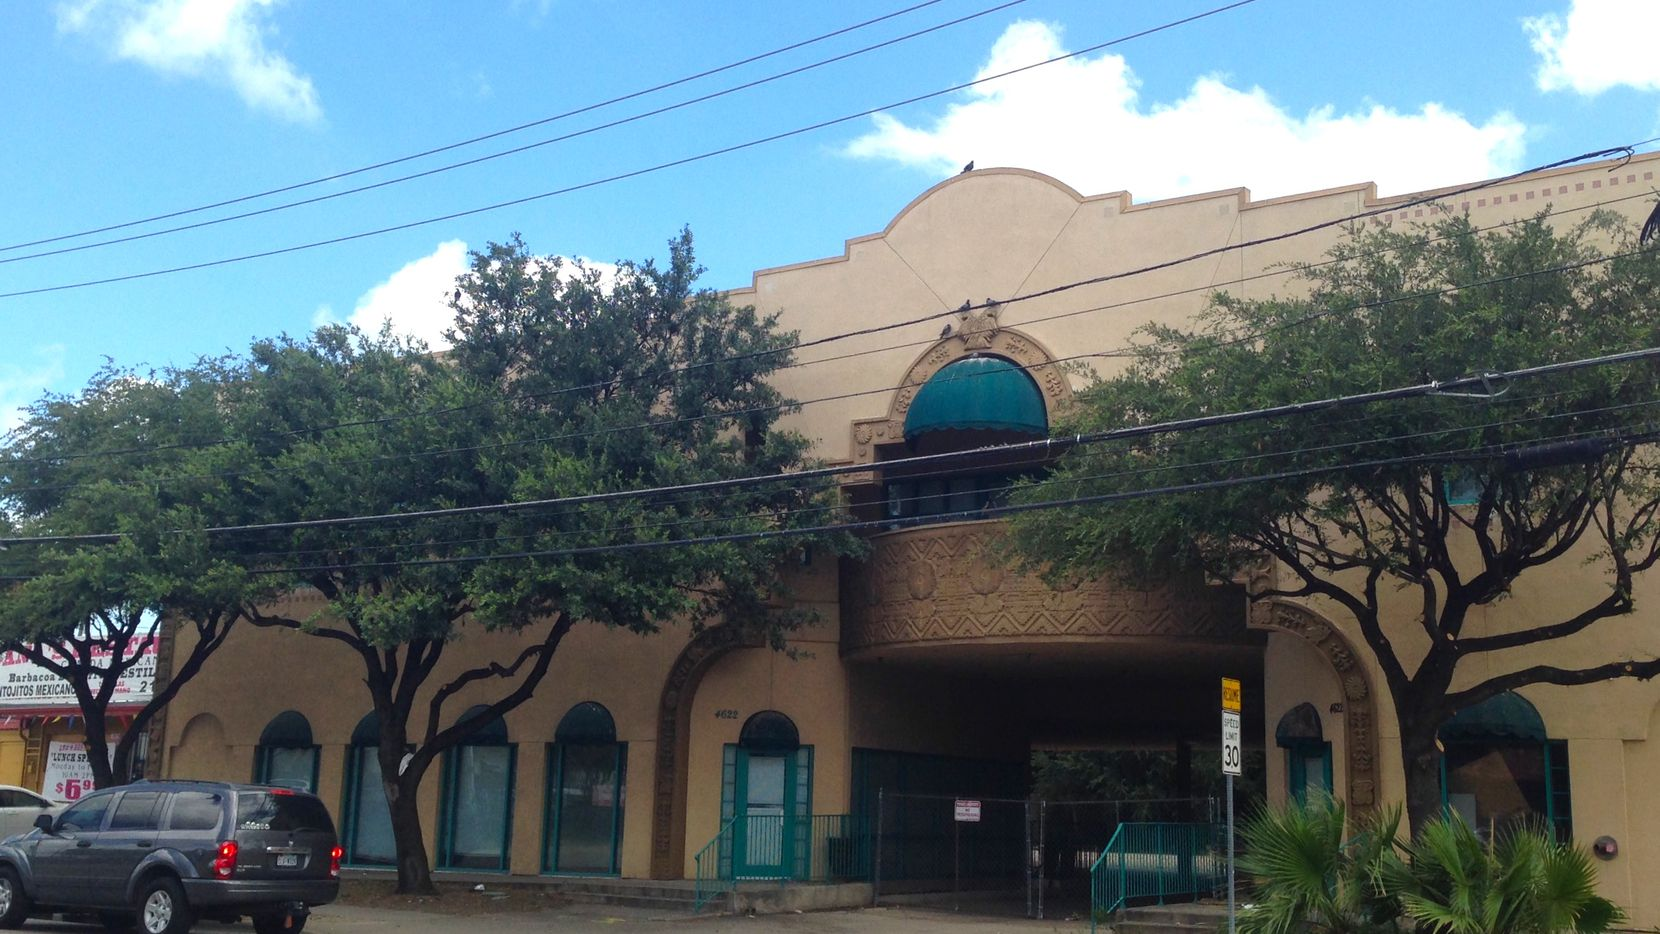 Originally built for the Greater Dallas Hispanic Chamber of Commerce, the building at 4622 Maple Avenue will be renovated into office and retail space.